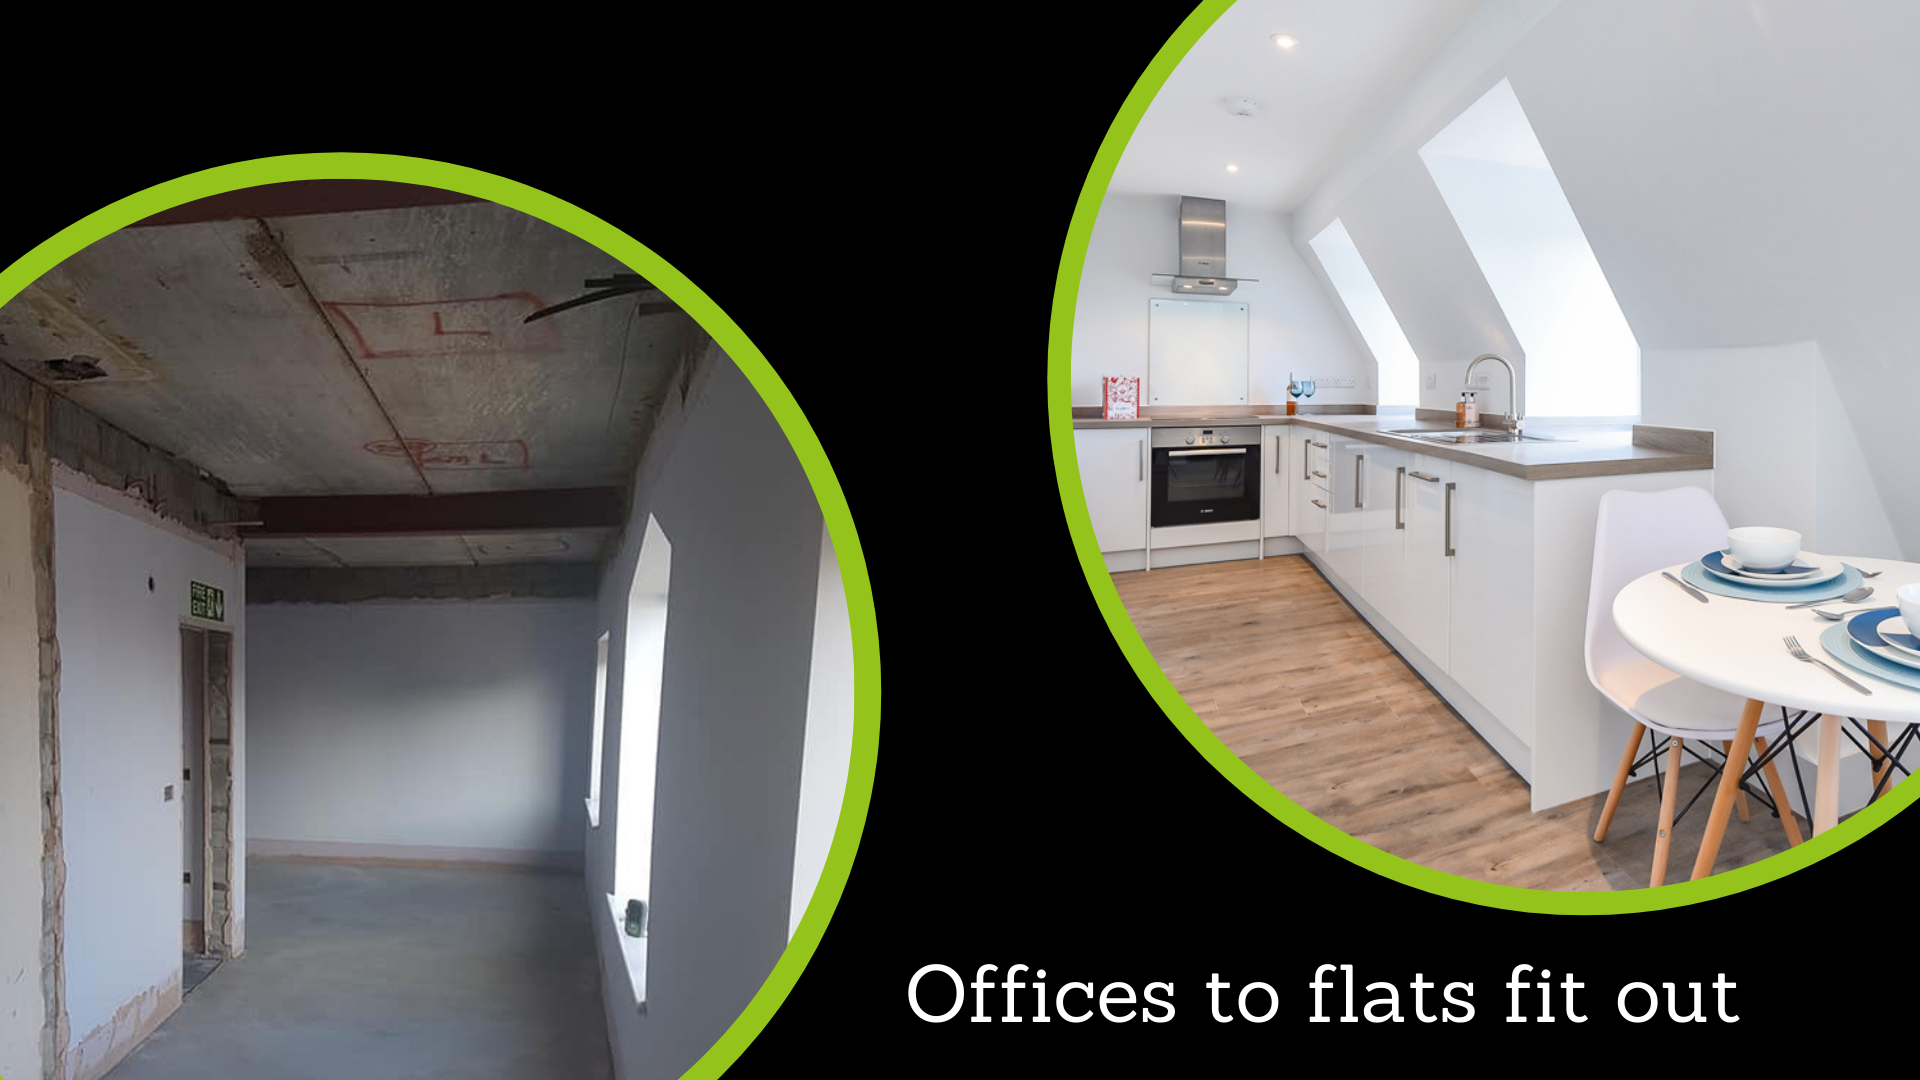 Photos of an office that Refurb converted to flats in a fit-out